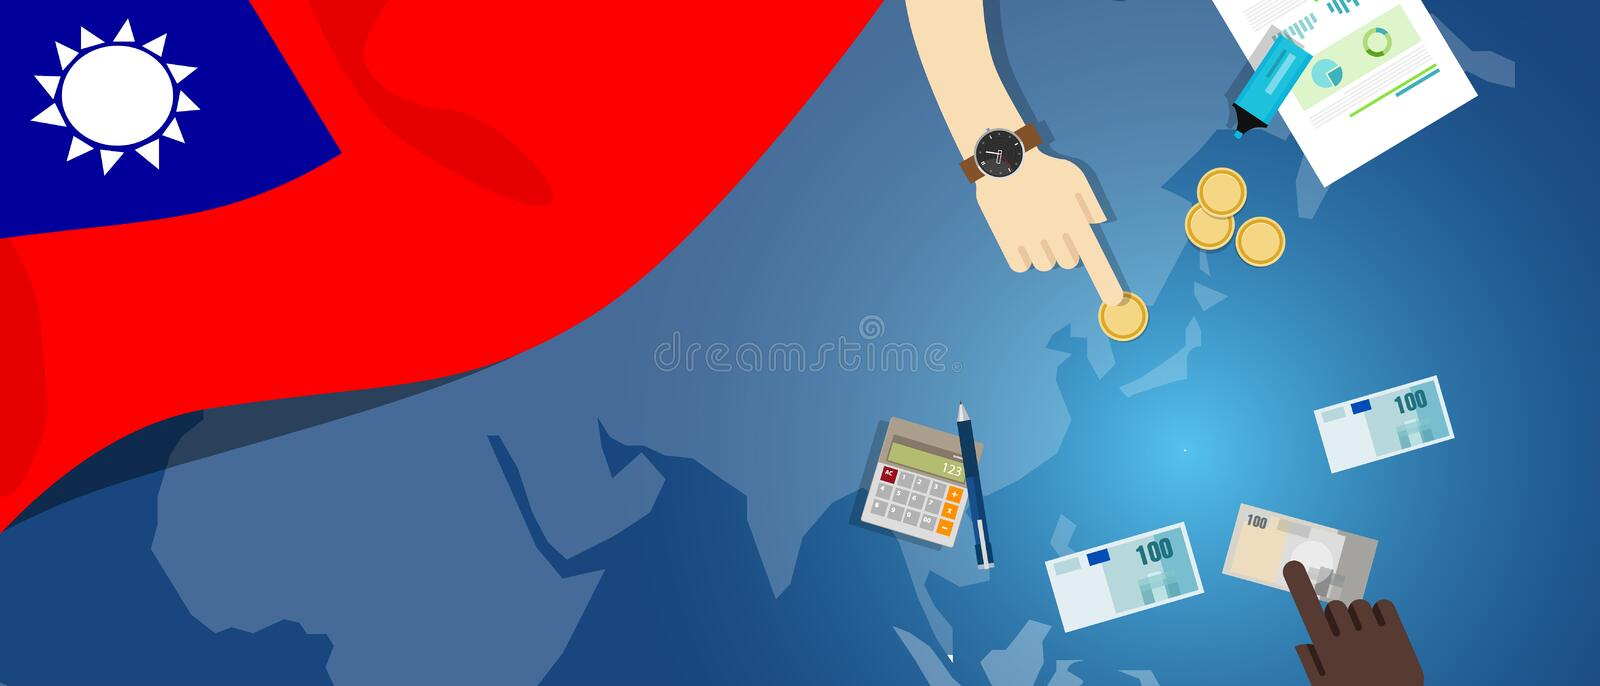 Taiwan Republic of China economy fiscal money trade concept illustration of financial banking budget with flag map stock illustration